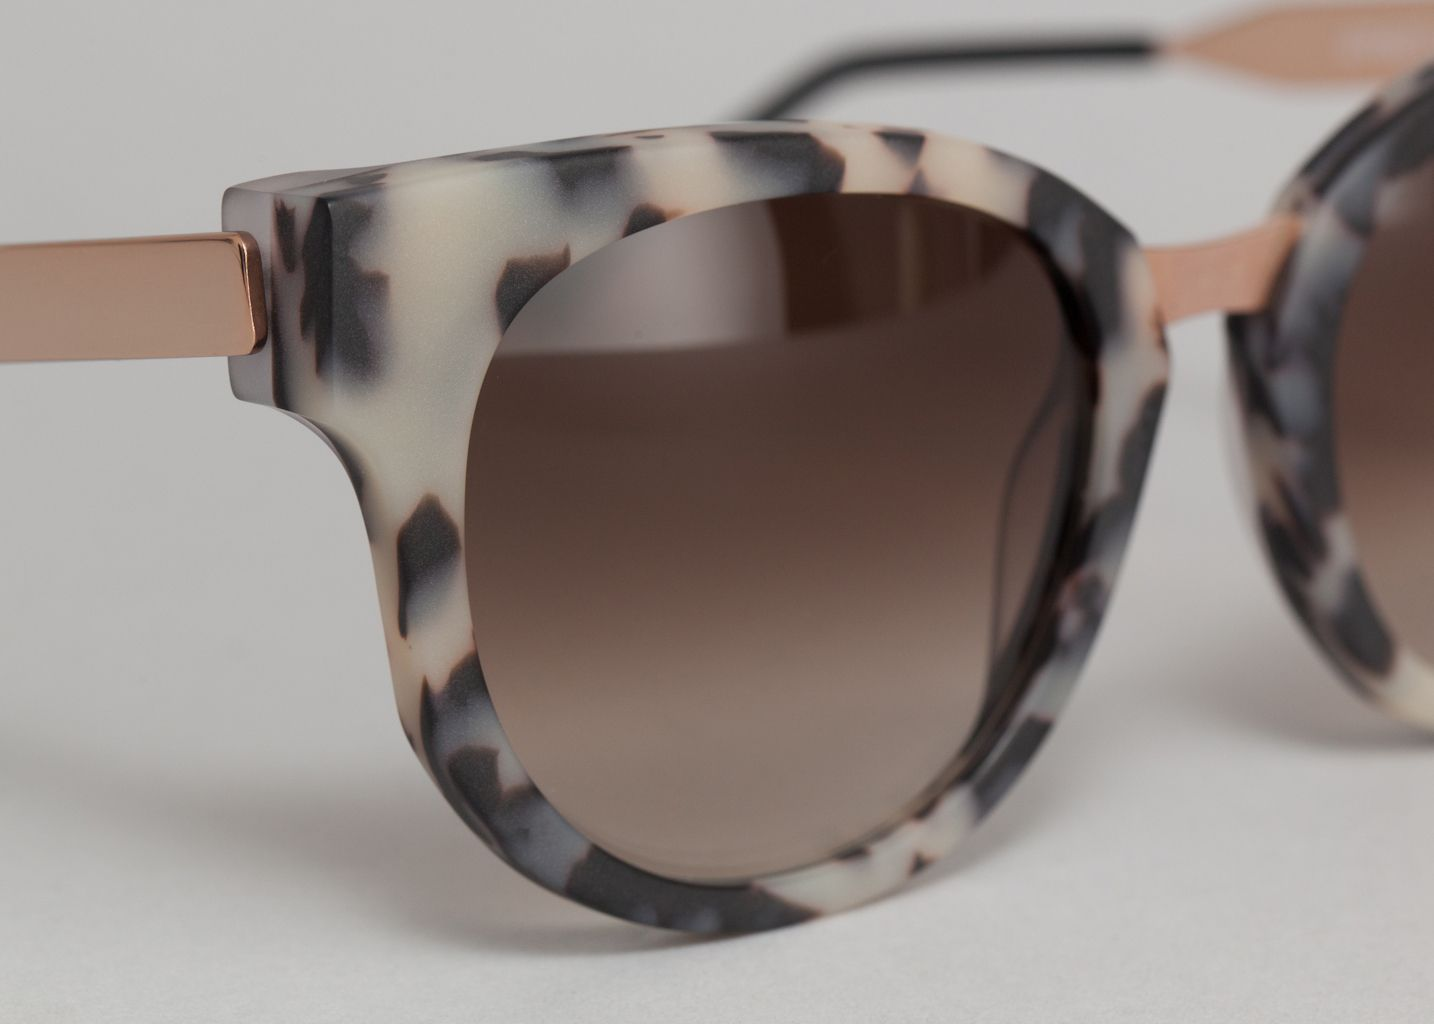 Lunettes Affinity - Thierry Lasry